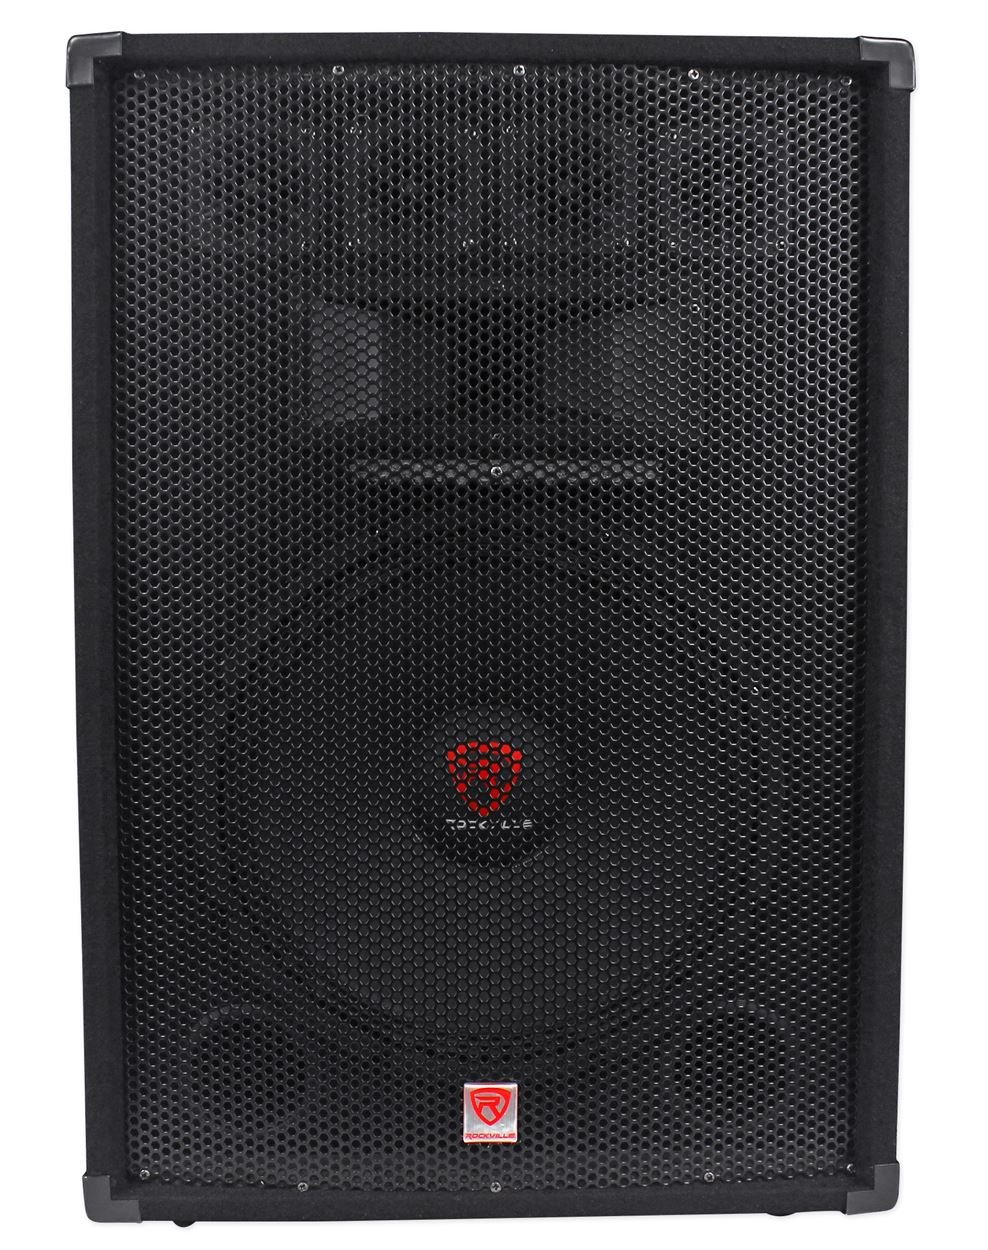 Rockville RSG15.28 Dual 15 3000 Watt 3-Way 8-Ohm Passive DJ/Pro PA Speaker Audiosavings